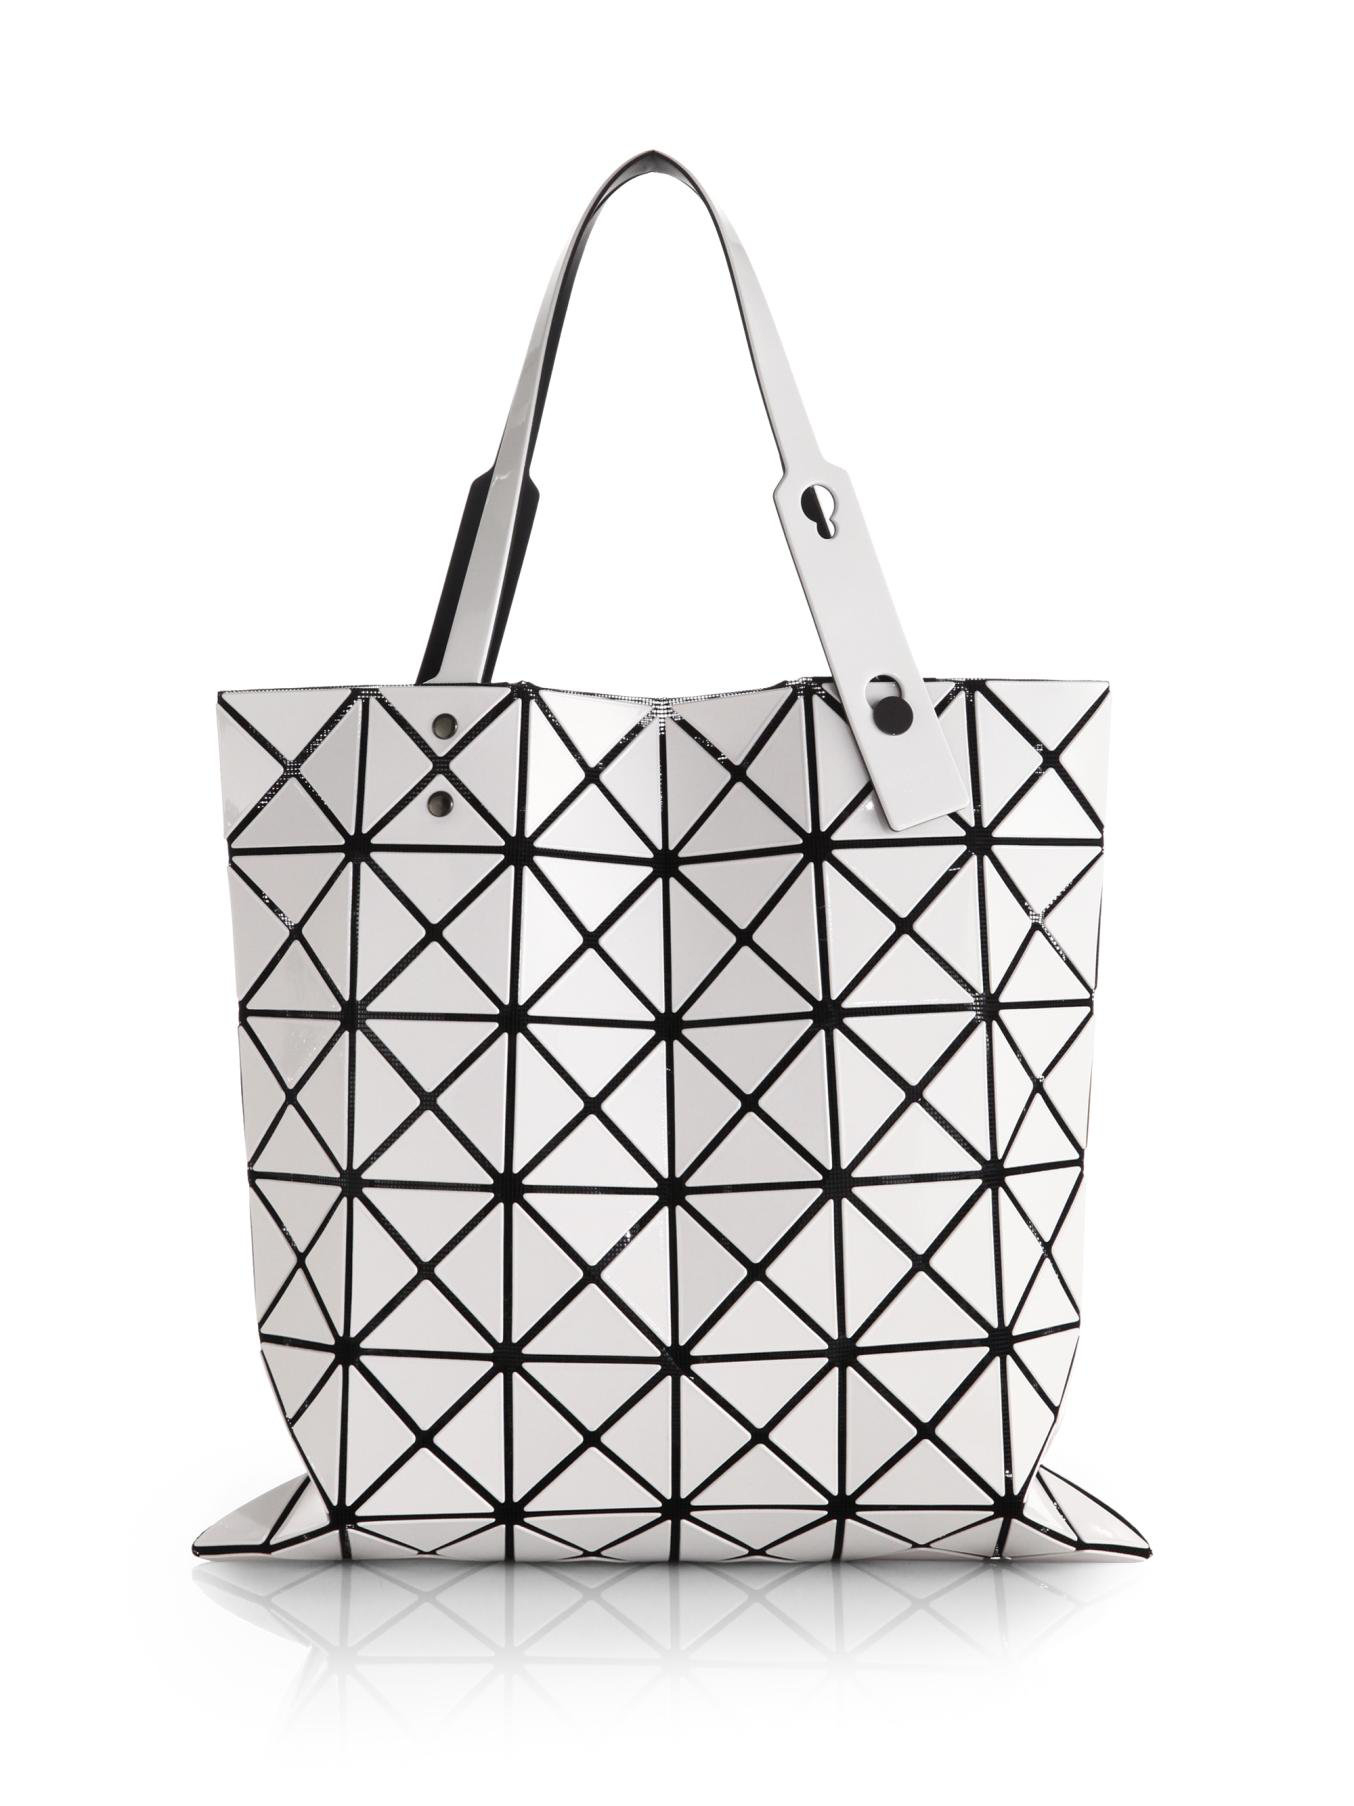 Lyst - Bao Bao Issey Miyake Lucent Basic Faux-Leather Tote in White 84dd68bbd2205